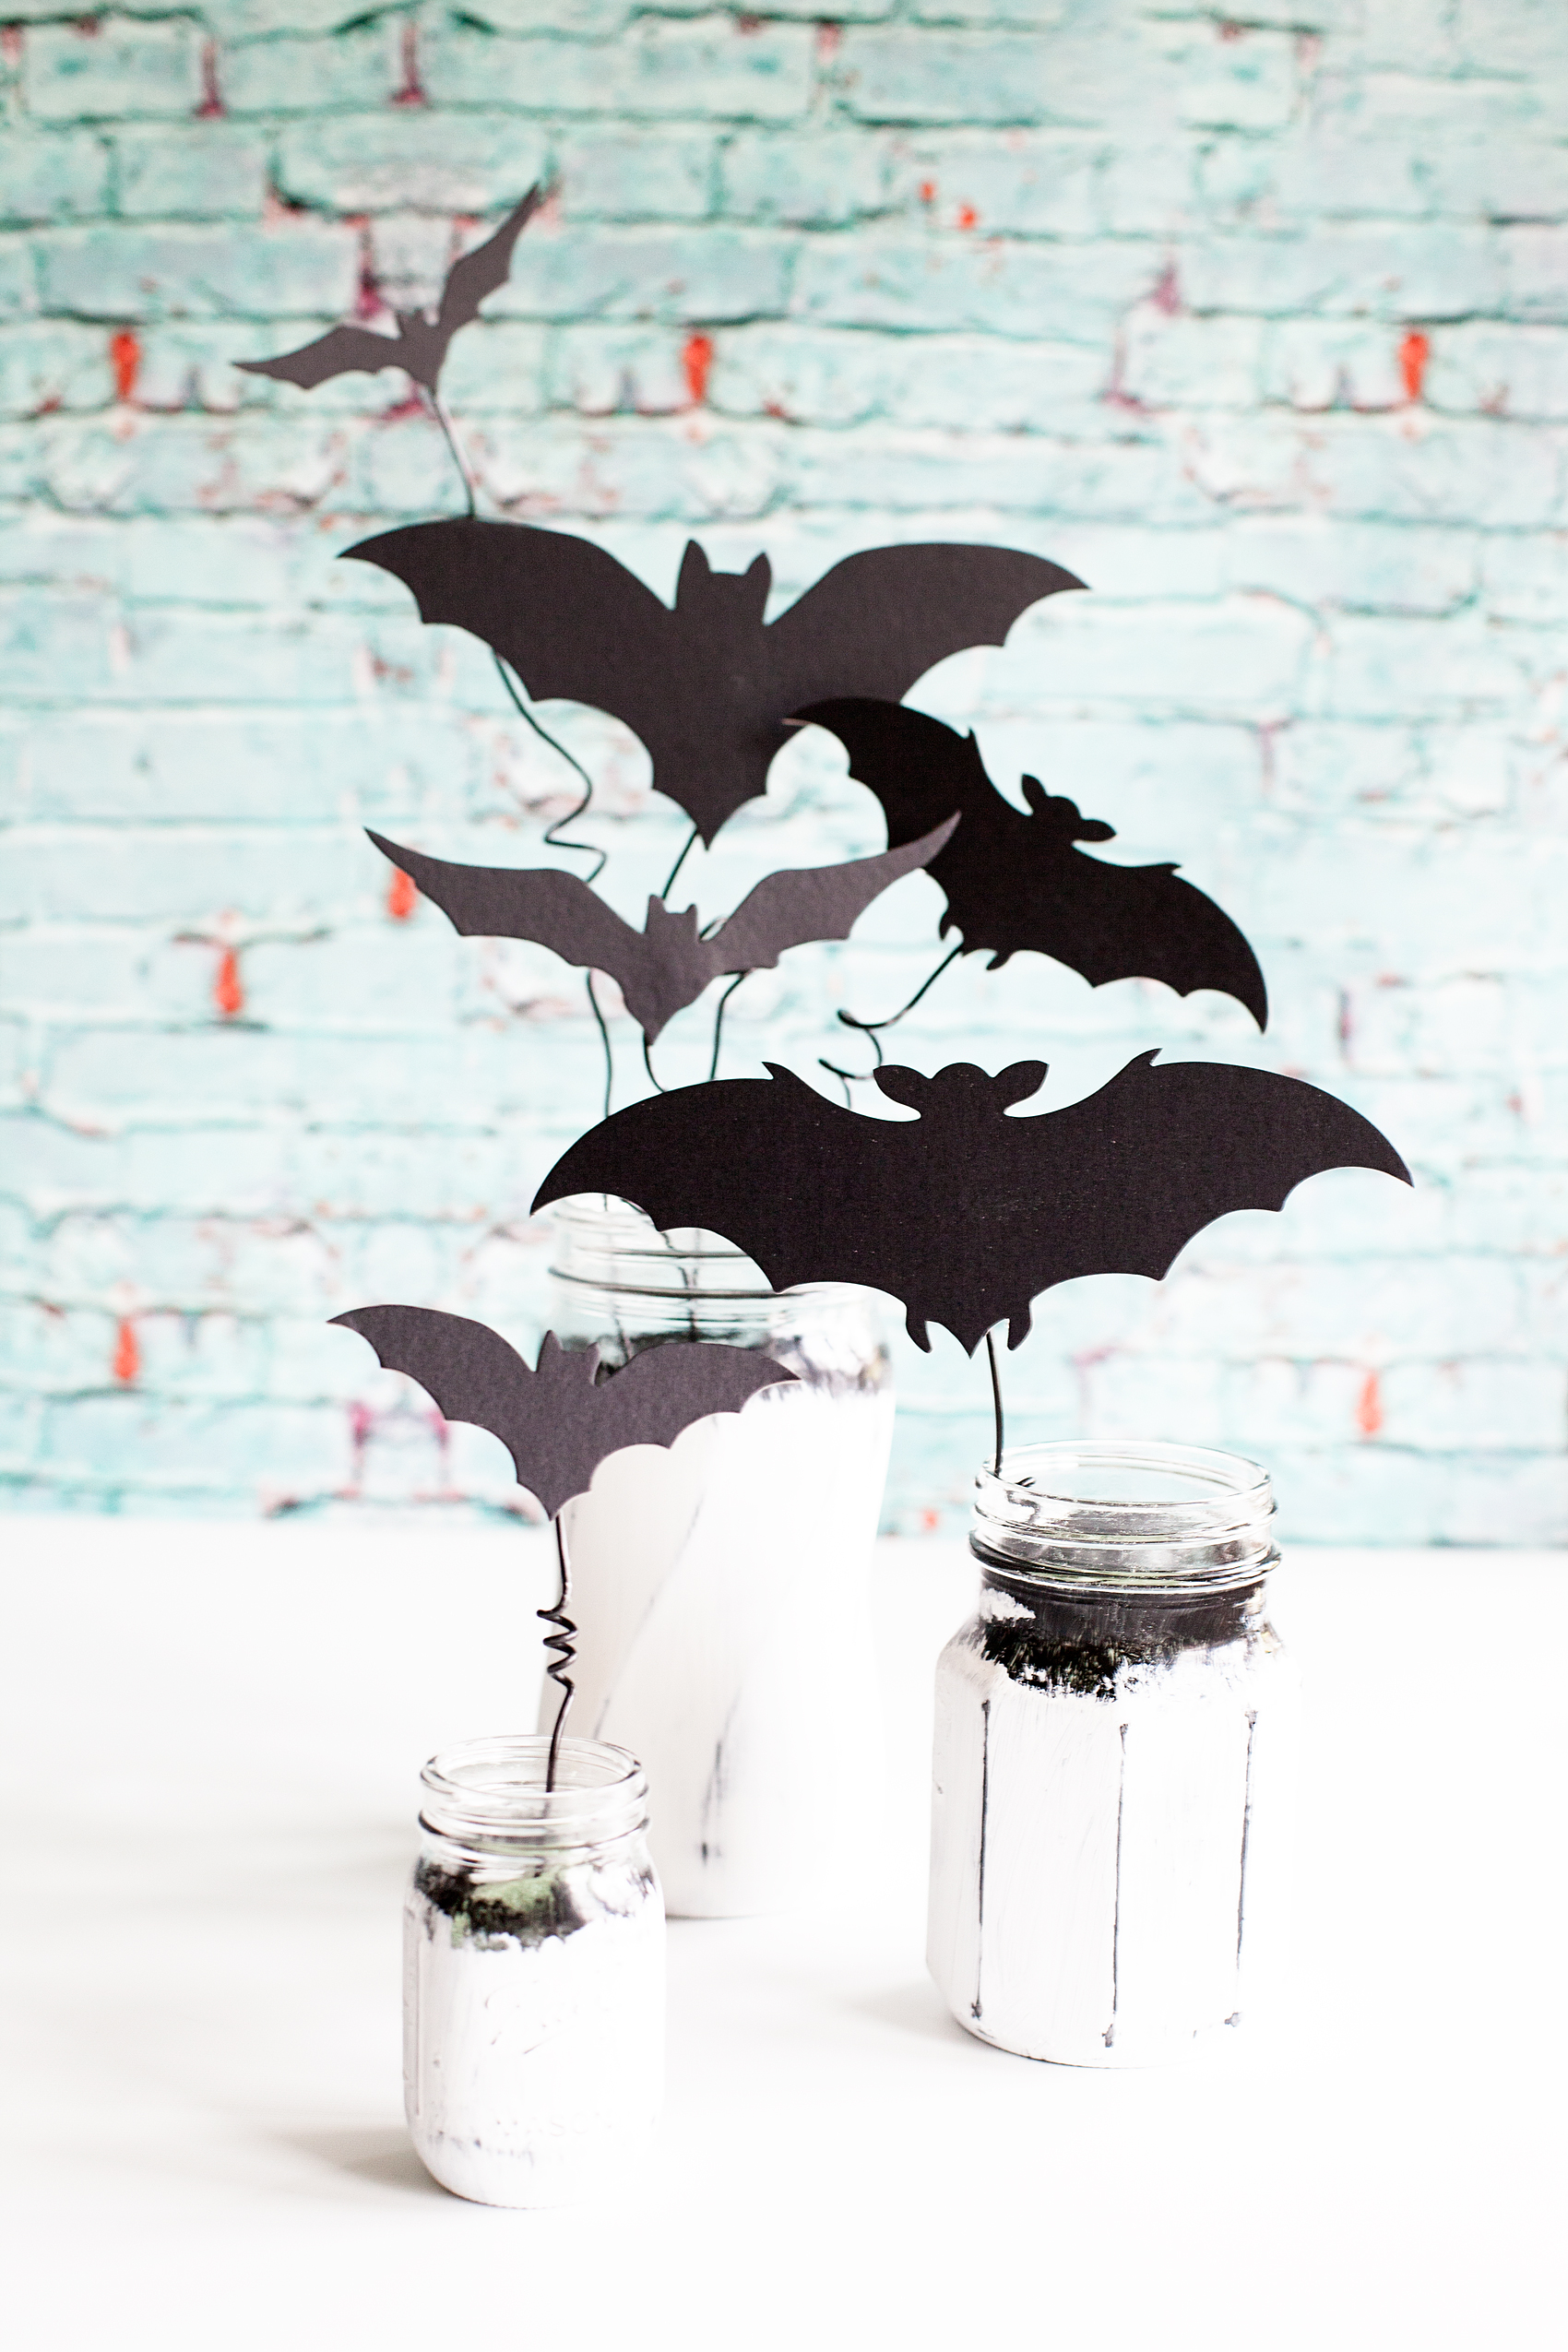 Chalky Finish Halloween Bat Jars • Have fun creating spooky Halloween decor with these Americana Decor Chalky Finish Ball Jars filled with creepy bats. Decorate your mantle or use them as a table centerpiece. Either way, they will add some stylish fun to your Halloween decoration game.